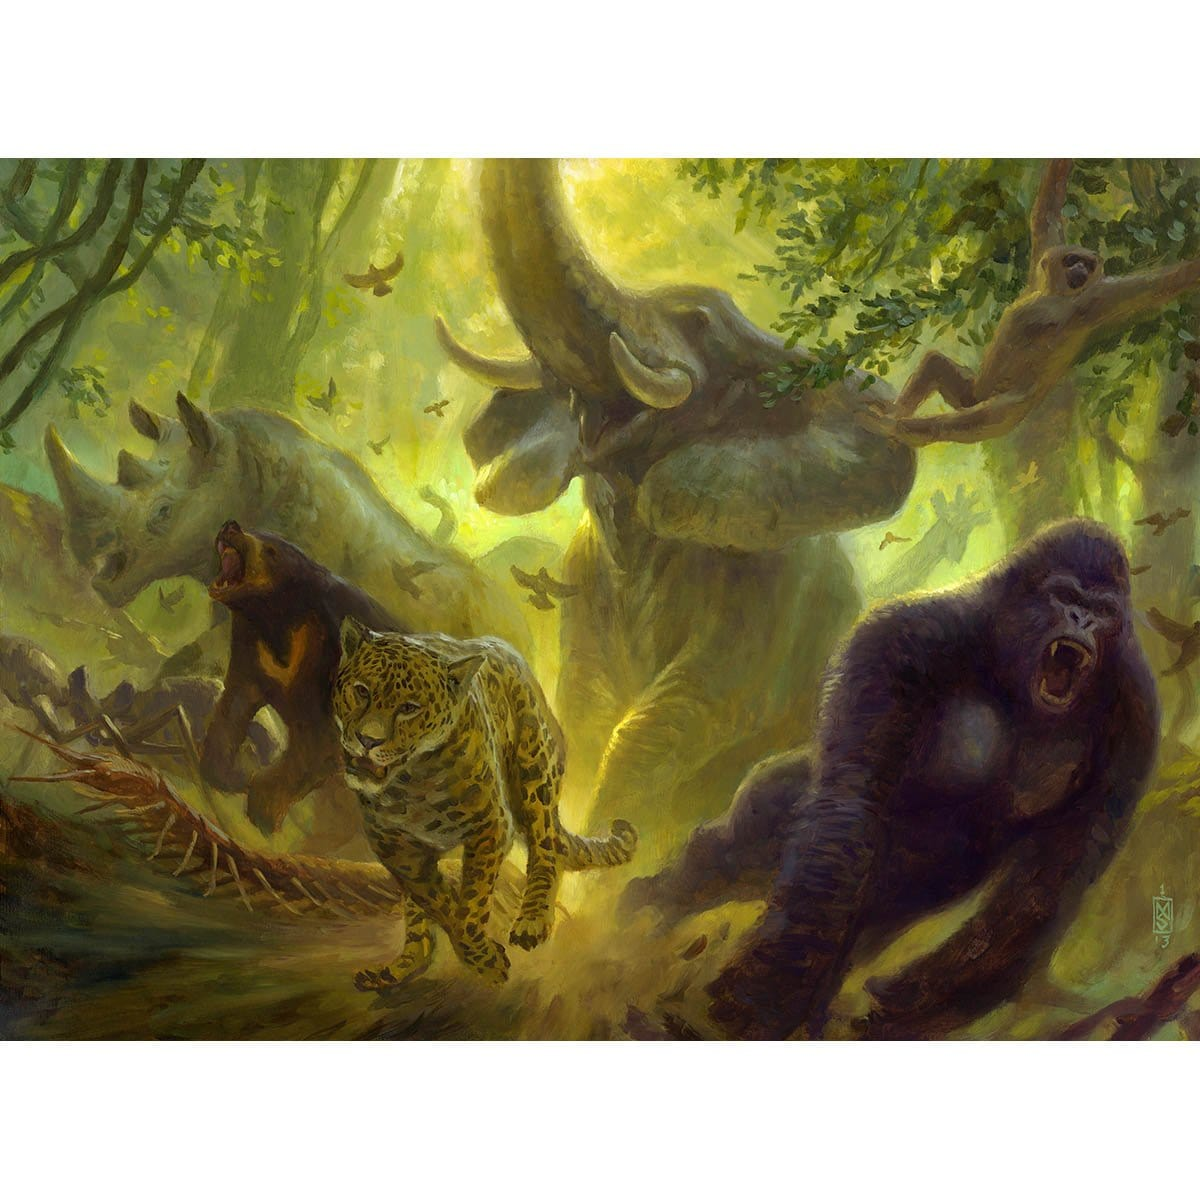 Primal Vigor Print - Print - Original Magic Art - Accessories for Magic the Gathering and other card games